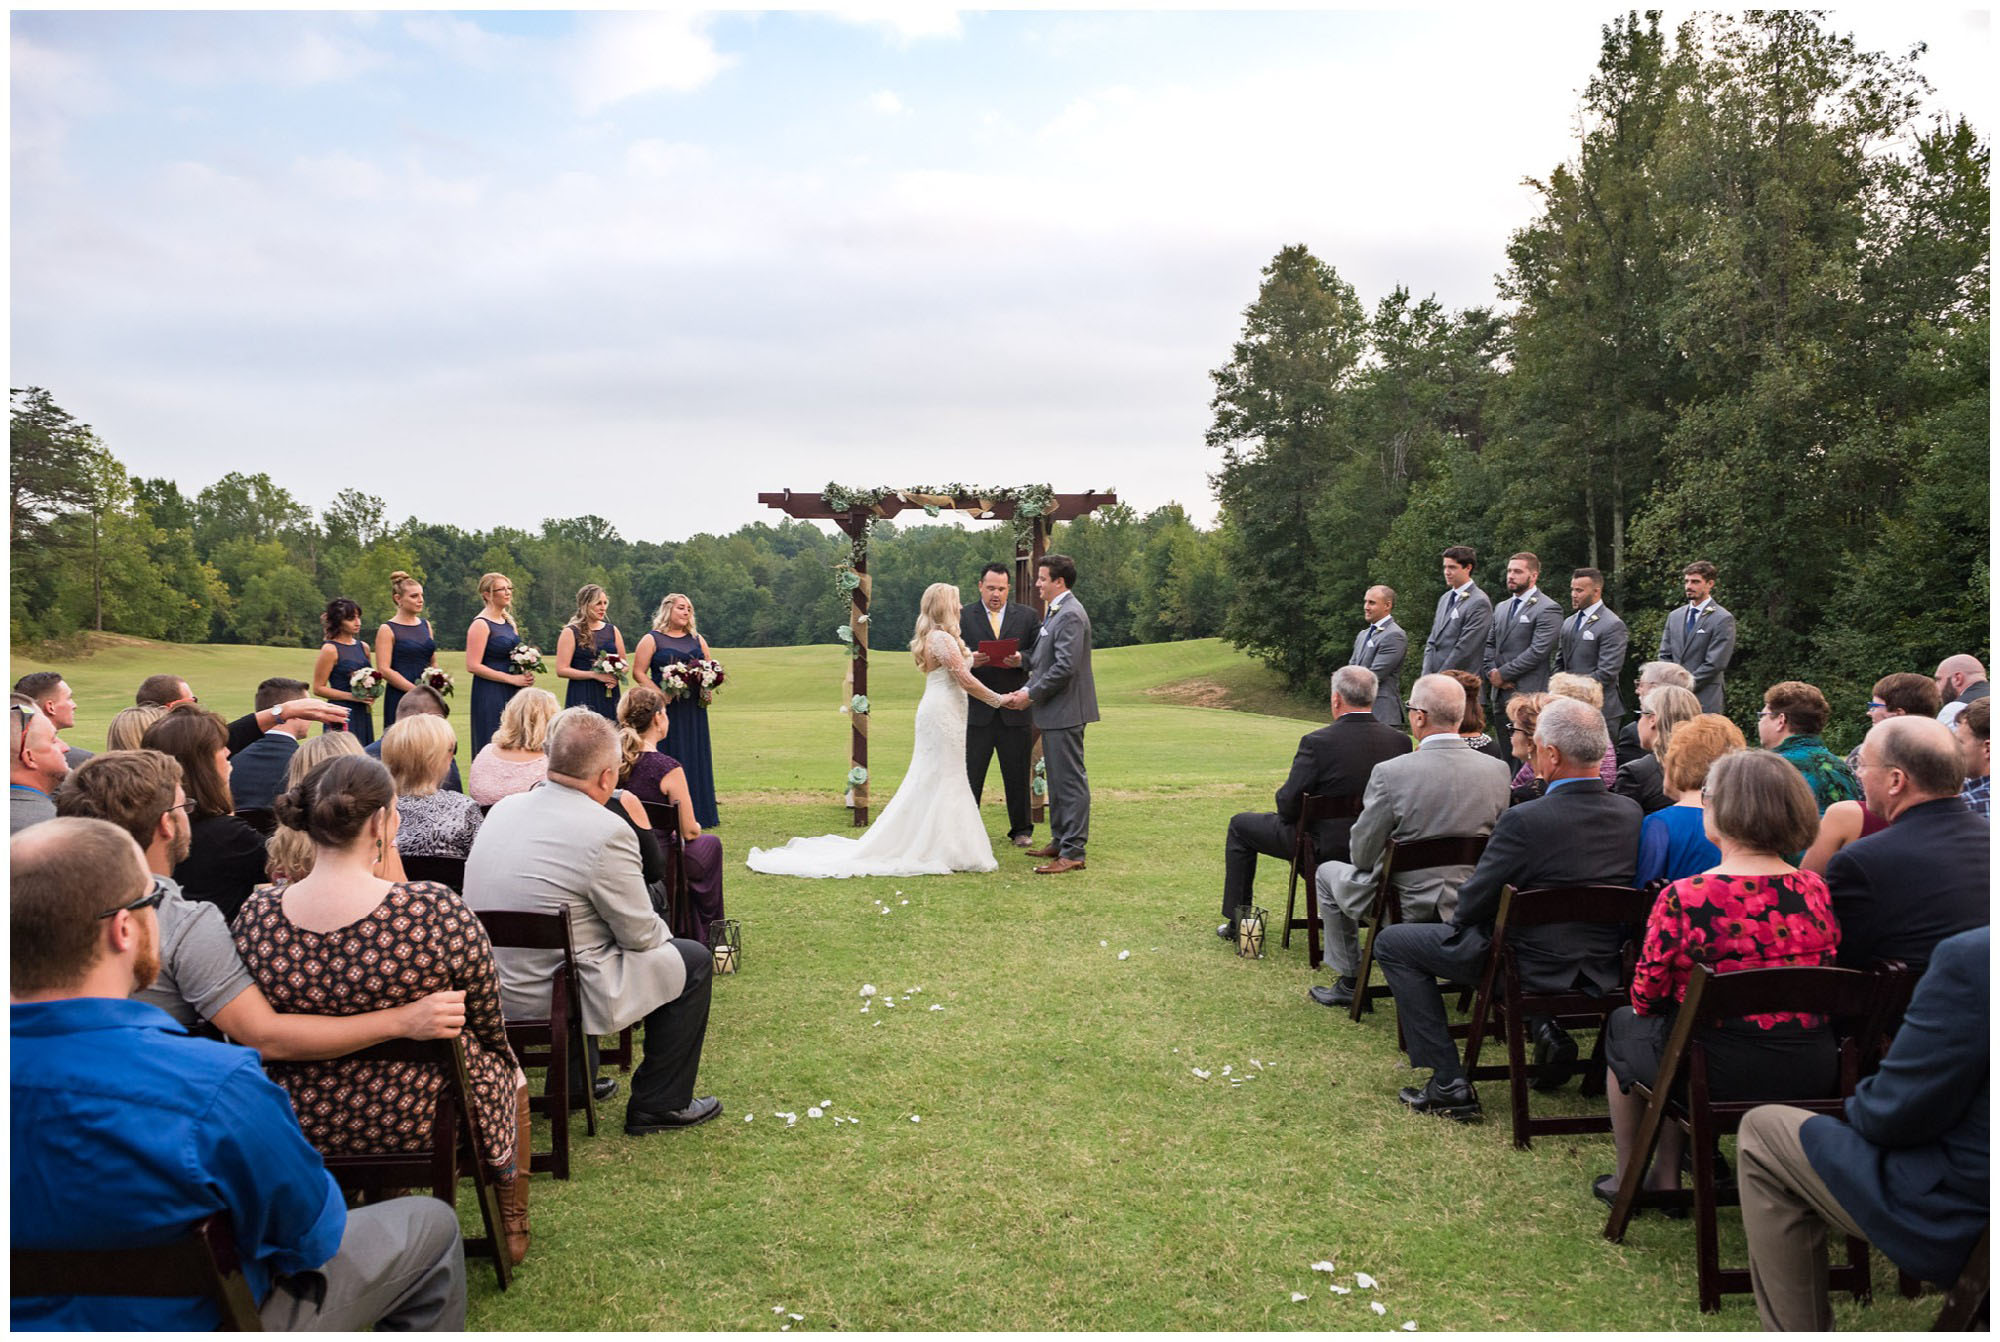 bride and groom holding hands during wedding ceremony on golf course